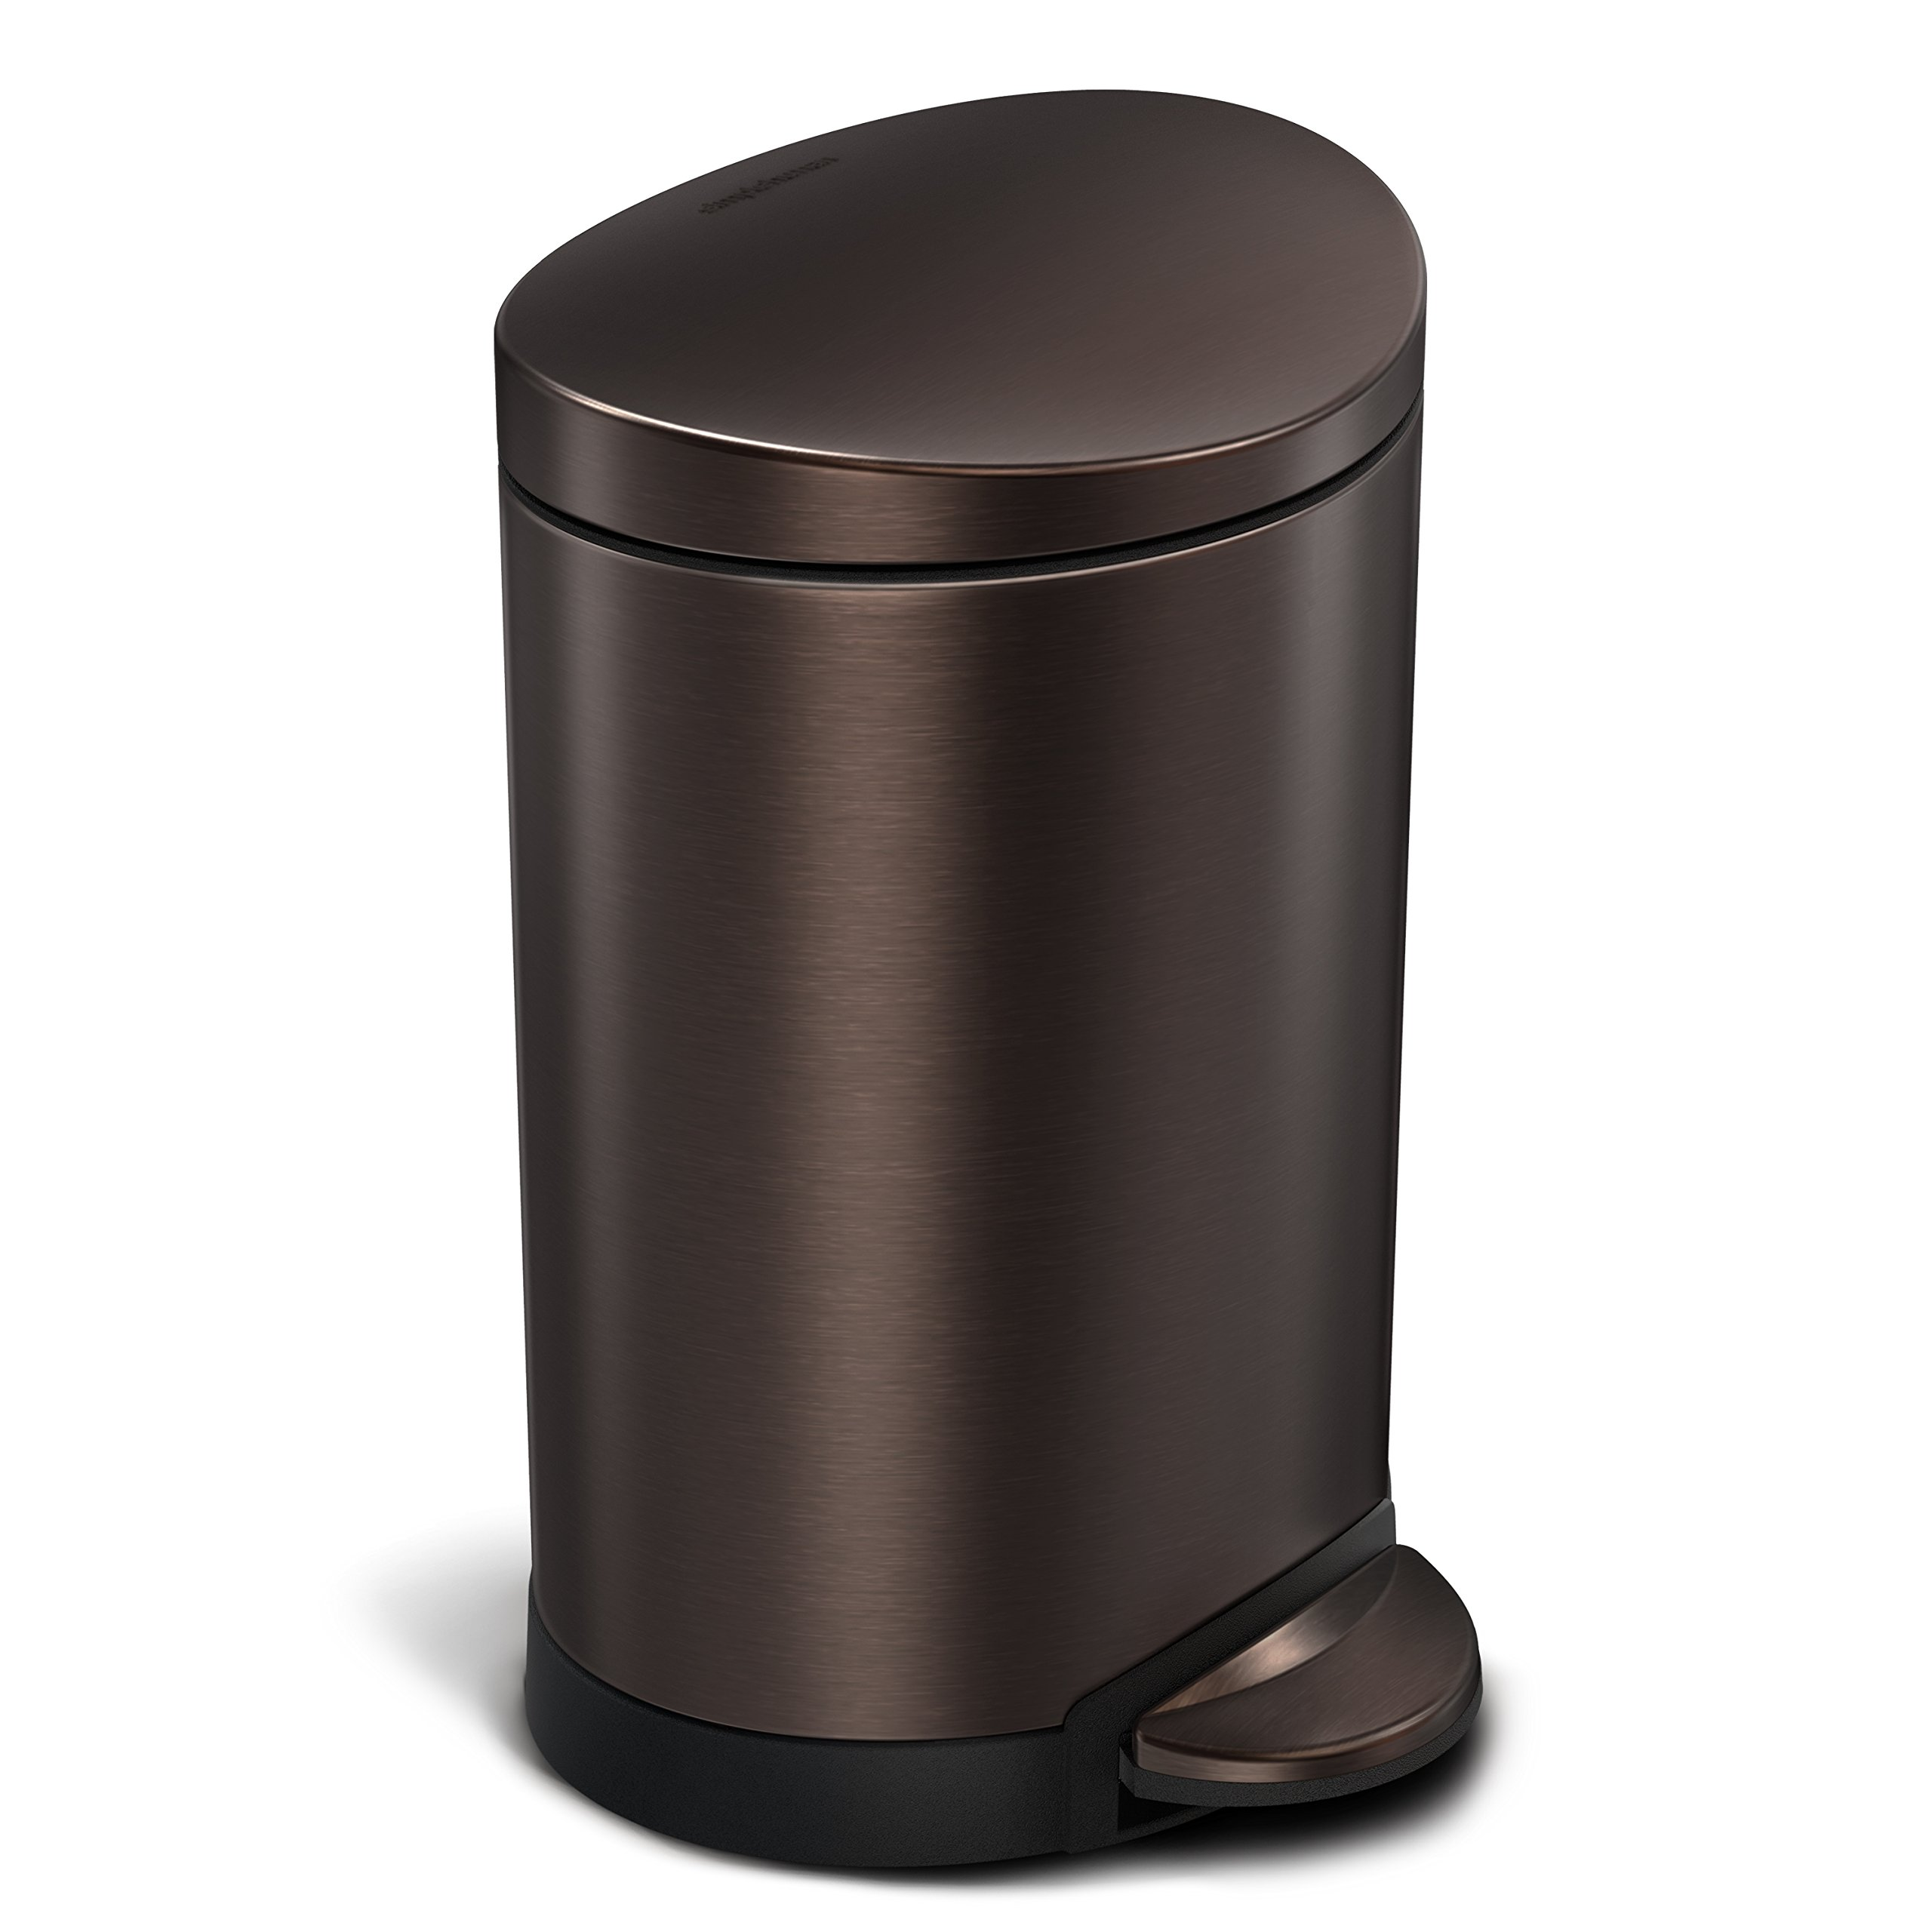 Step Trash Can Bathroom. Get Quotations  C2 B Liter 1 6 Gallon Stainless Steel Compact Semi Round Bathroom Step Trash Can